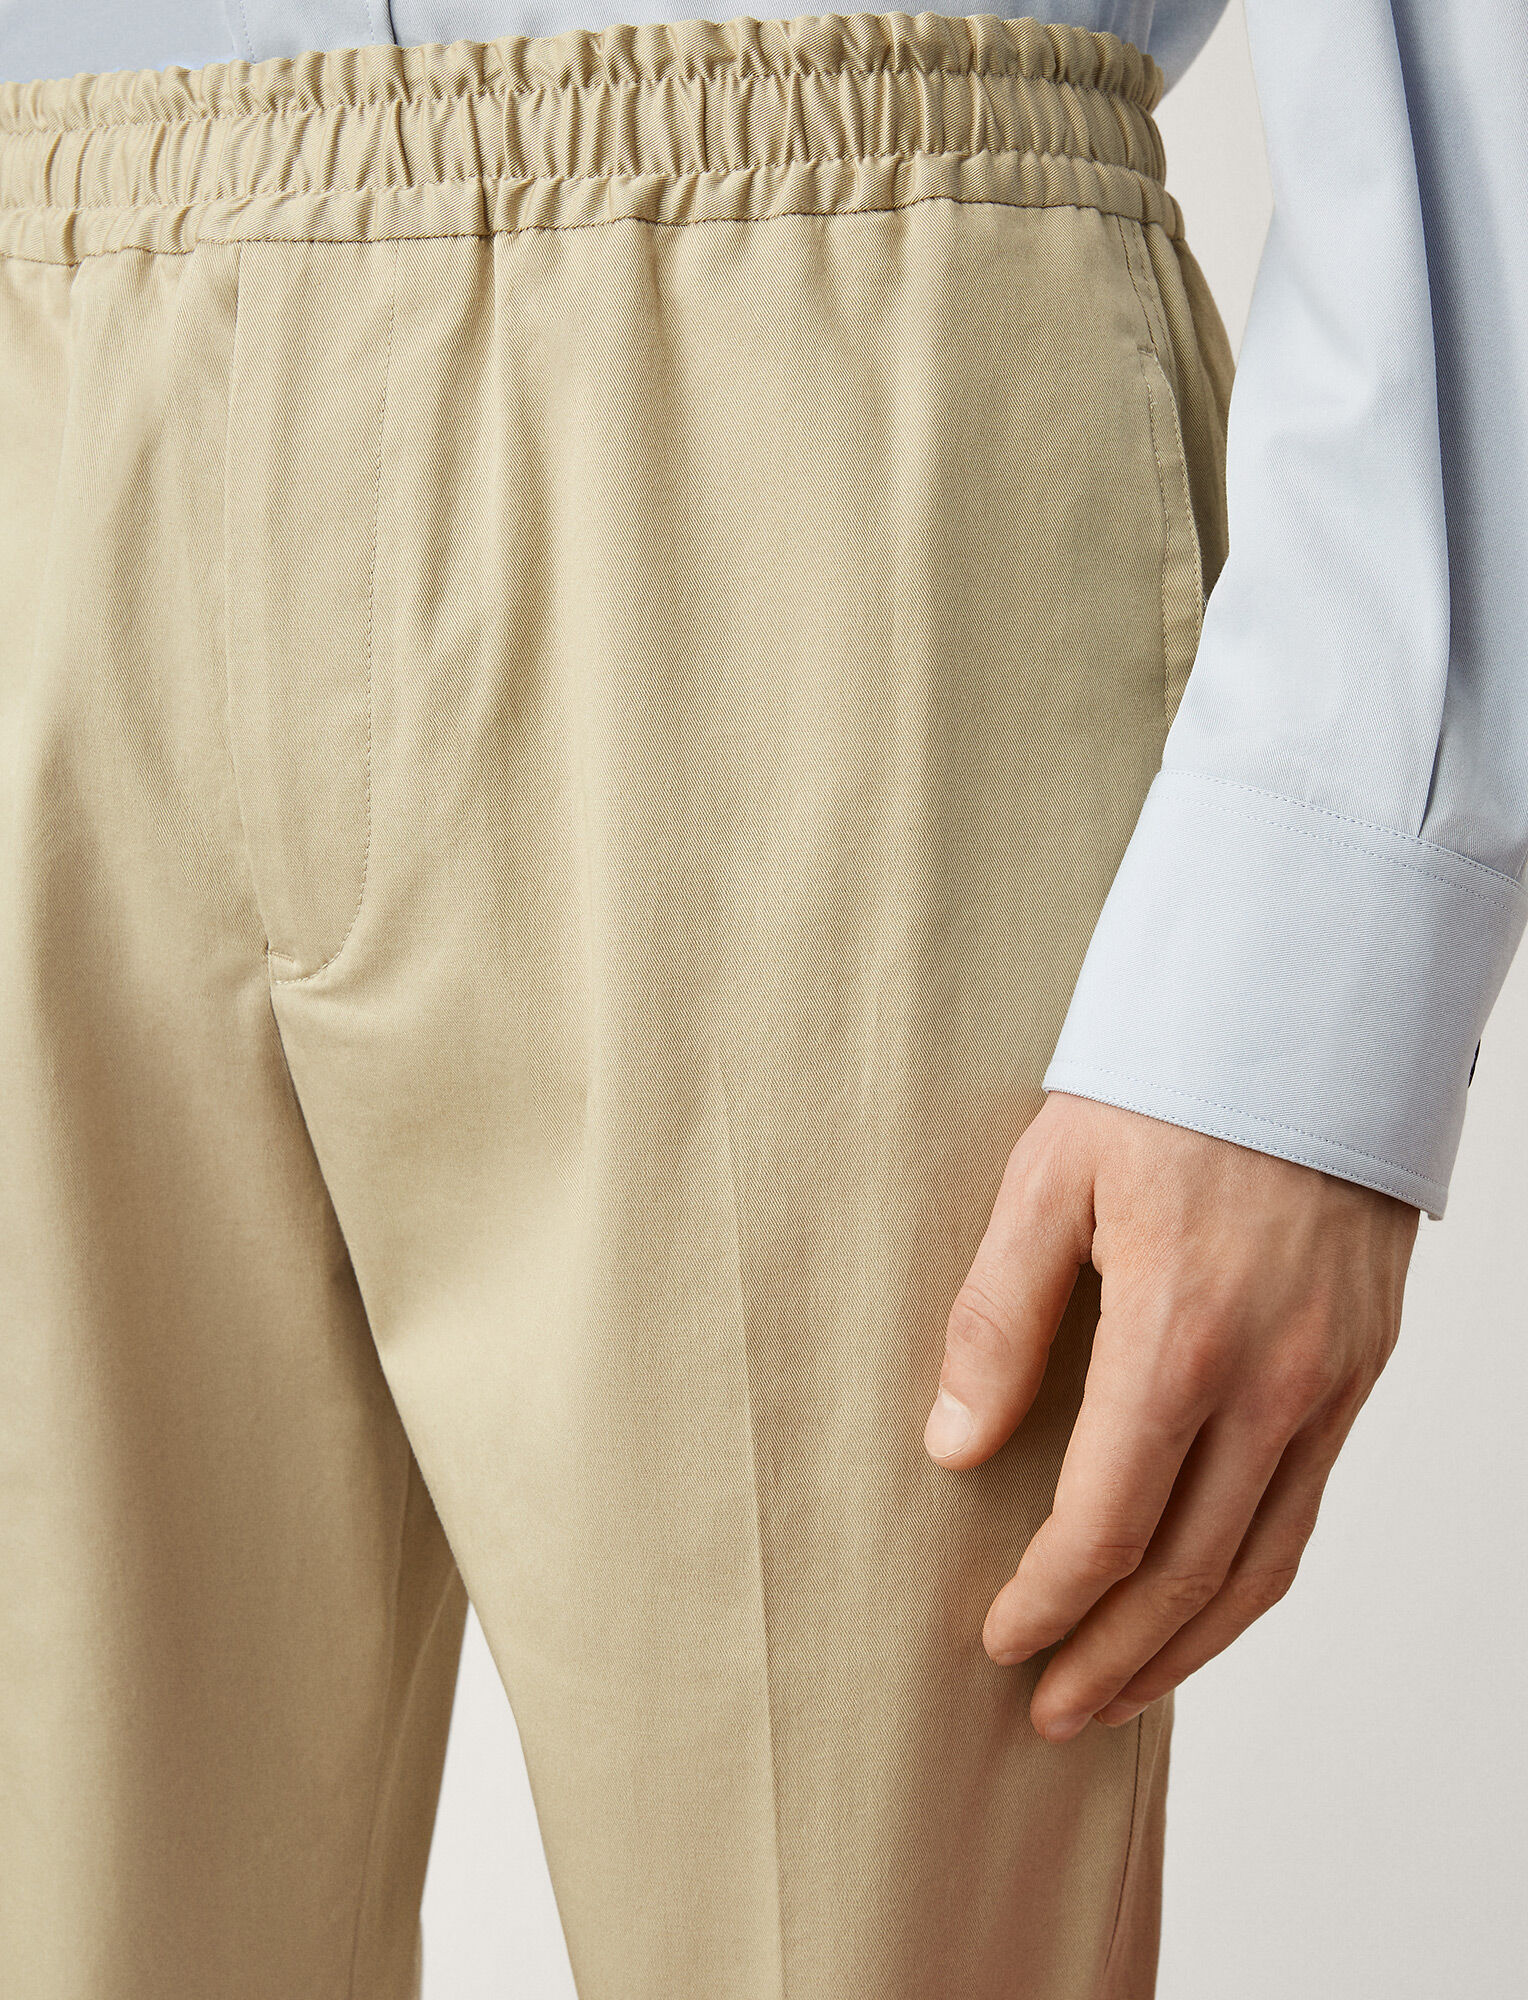 Joseph, Ettrick Fine Gabardine Stretch Trousers, in SAND